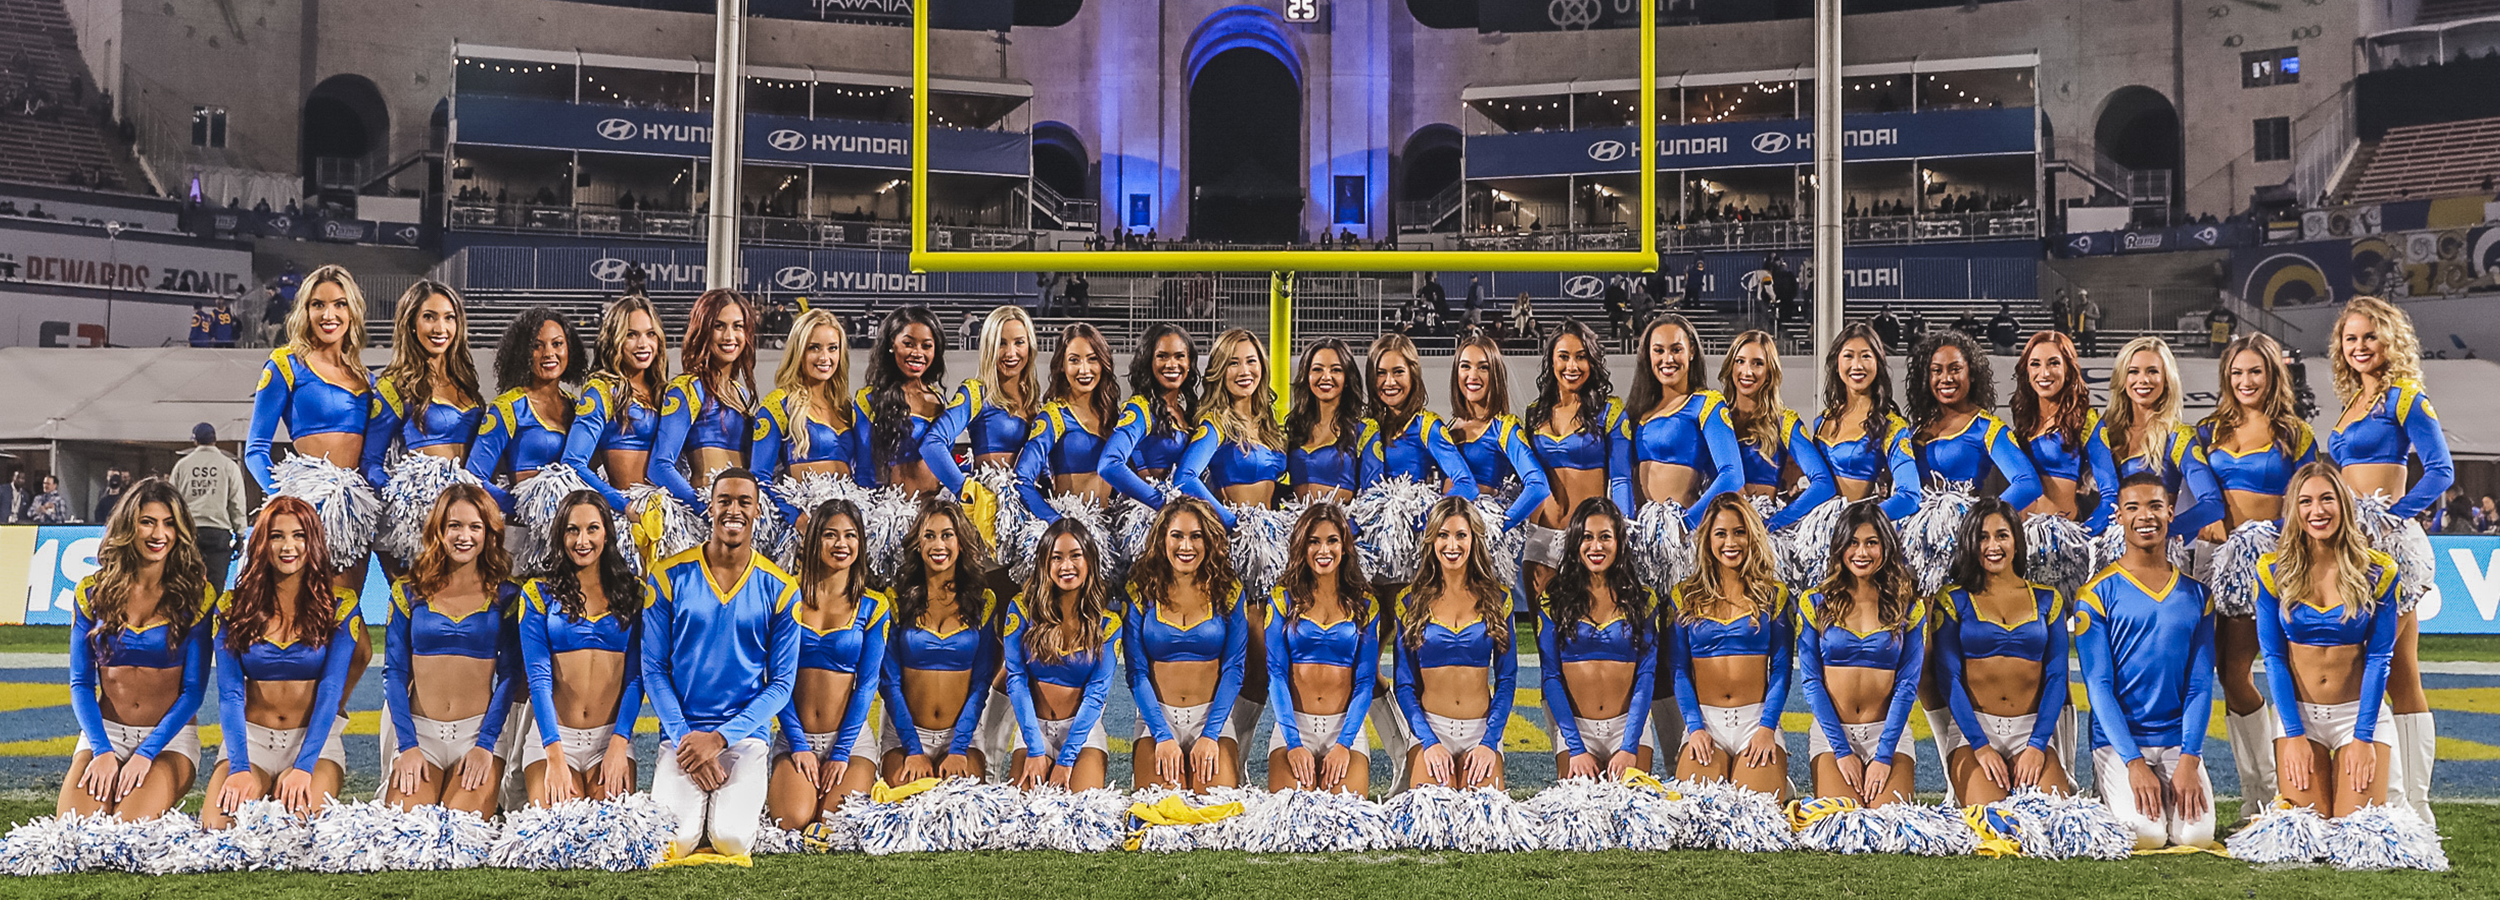 Rams Cheerleaders | Los Angeles Rams